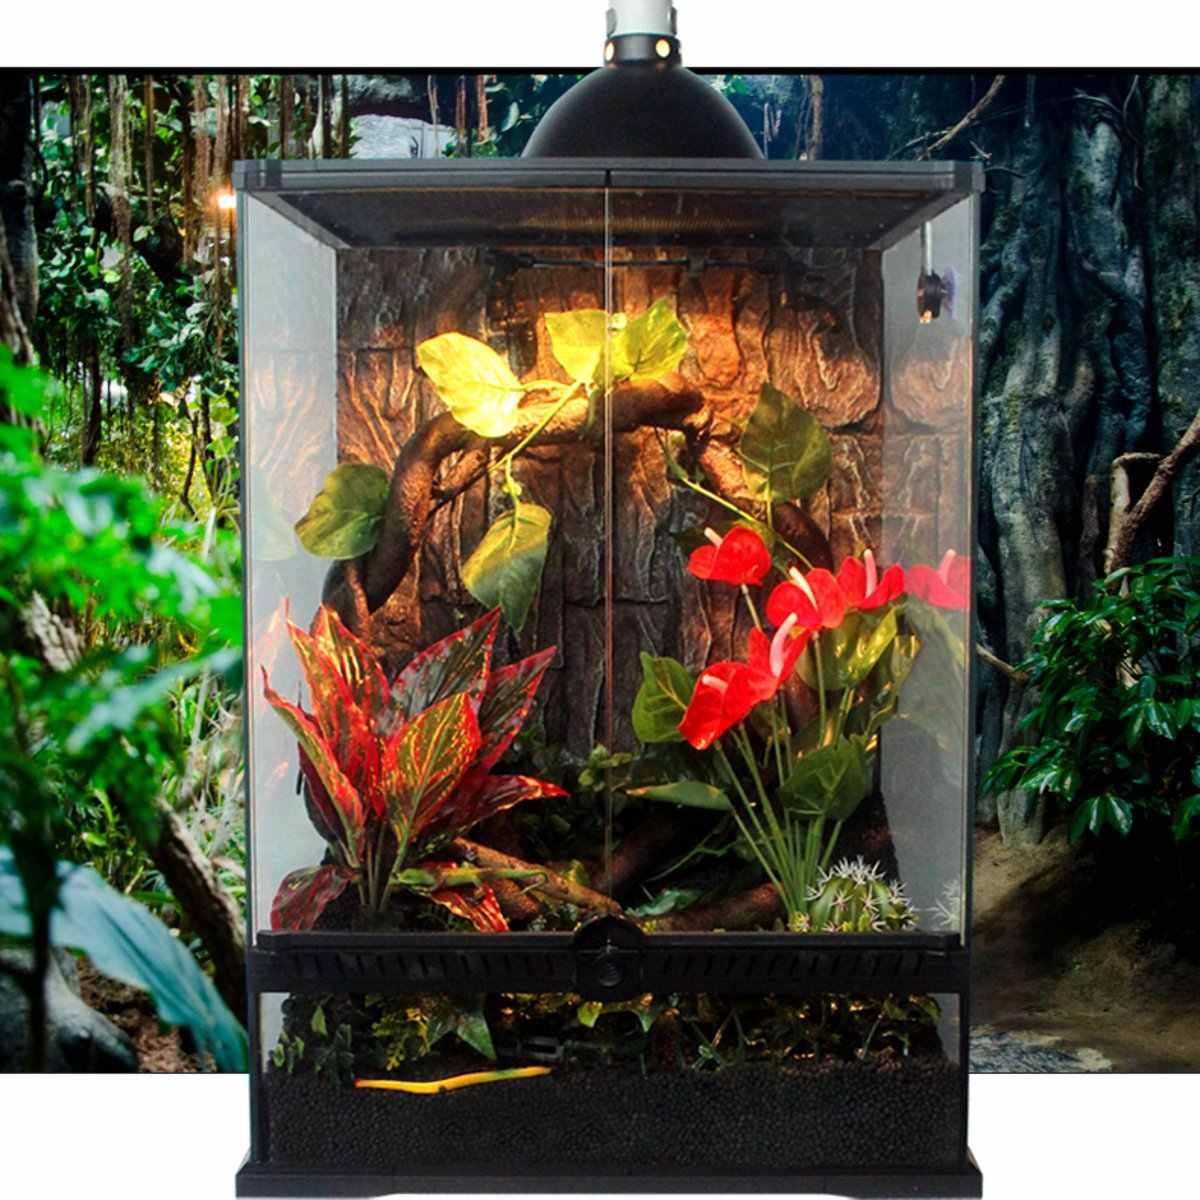 New Reptiles Habitat Decor Plants Ornament Reptile Tank Green Vine Leaf Grass Tropical Rainforest Landscaping Artificial Plants